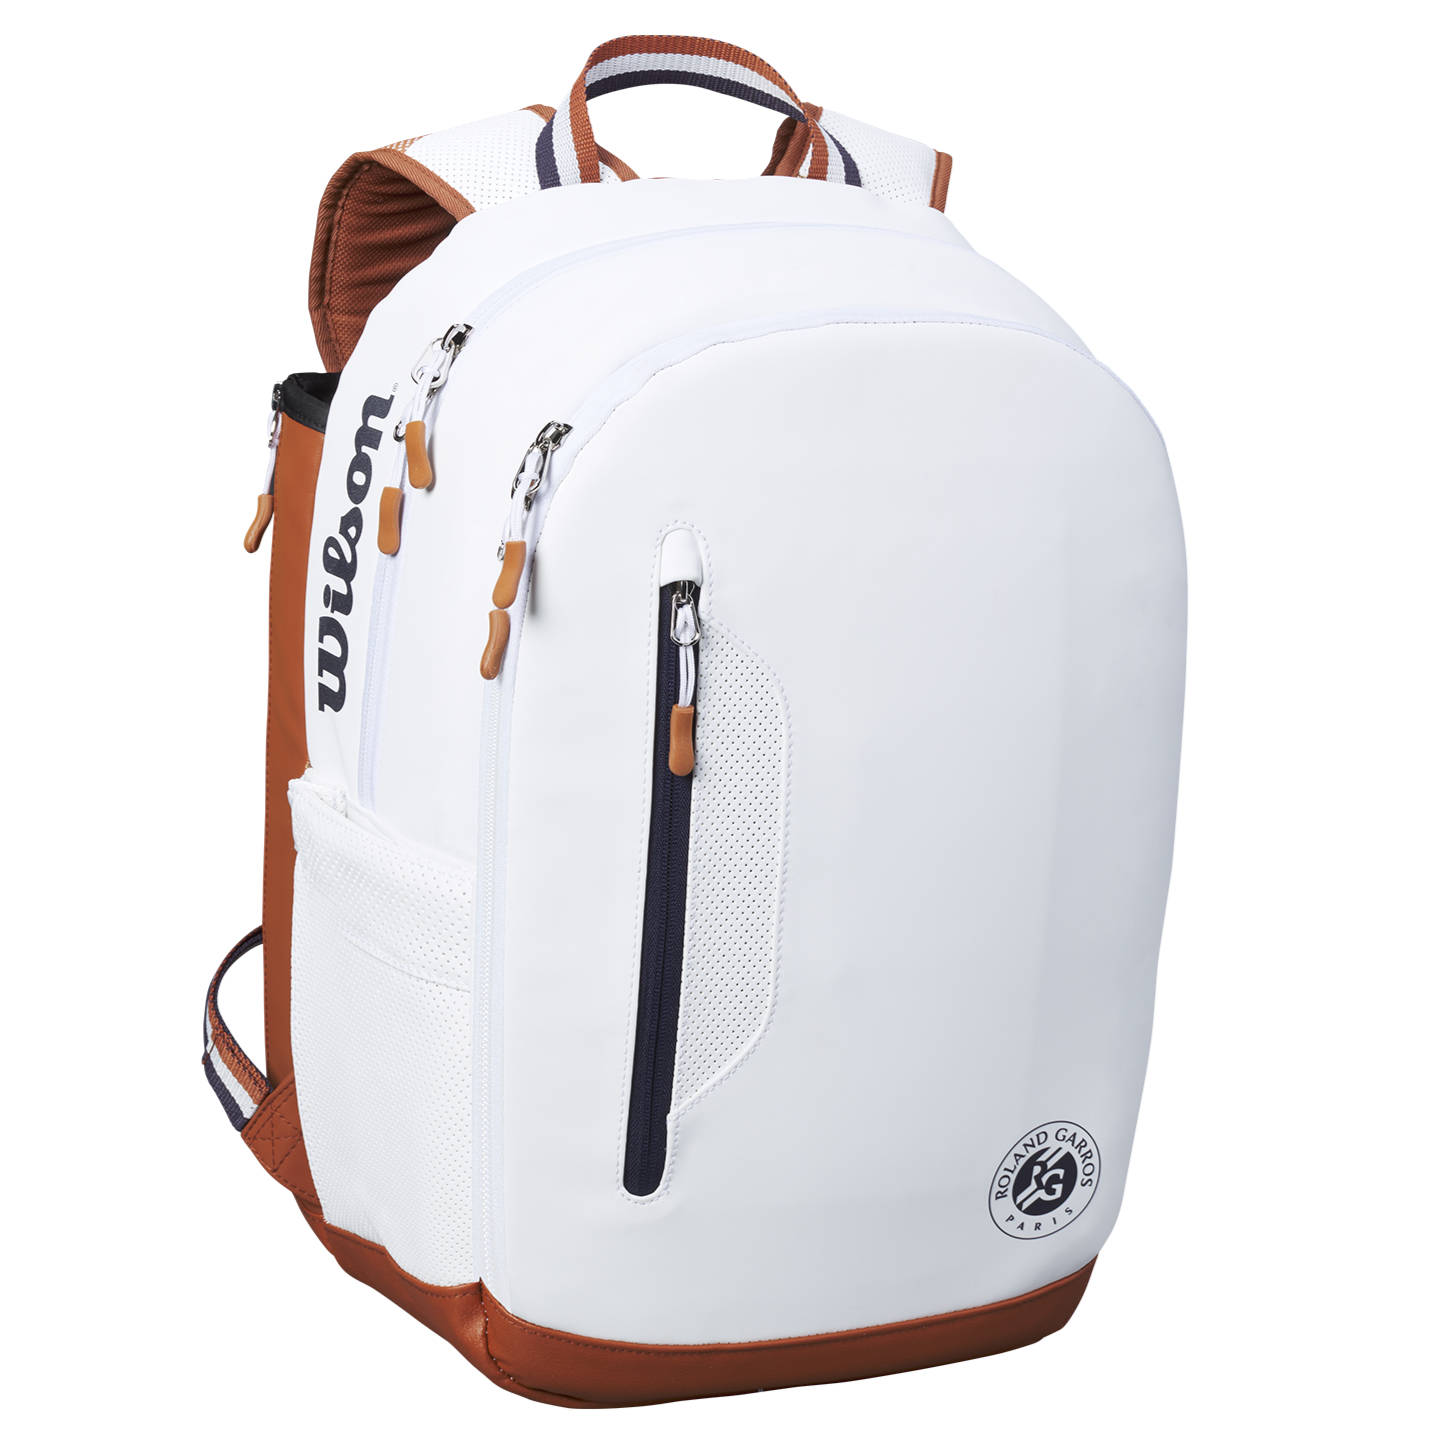 Wilson Roland Garros Tour Backpack - White